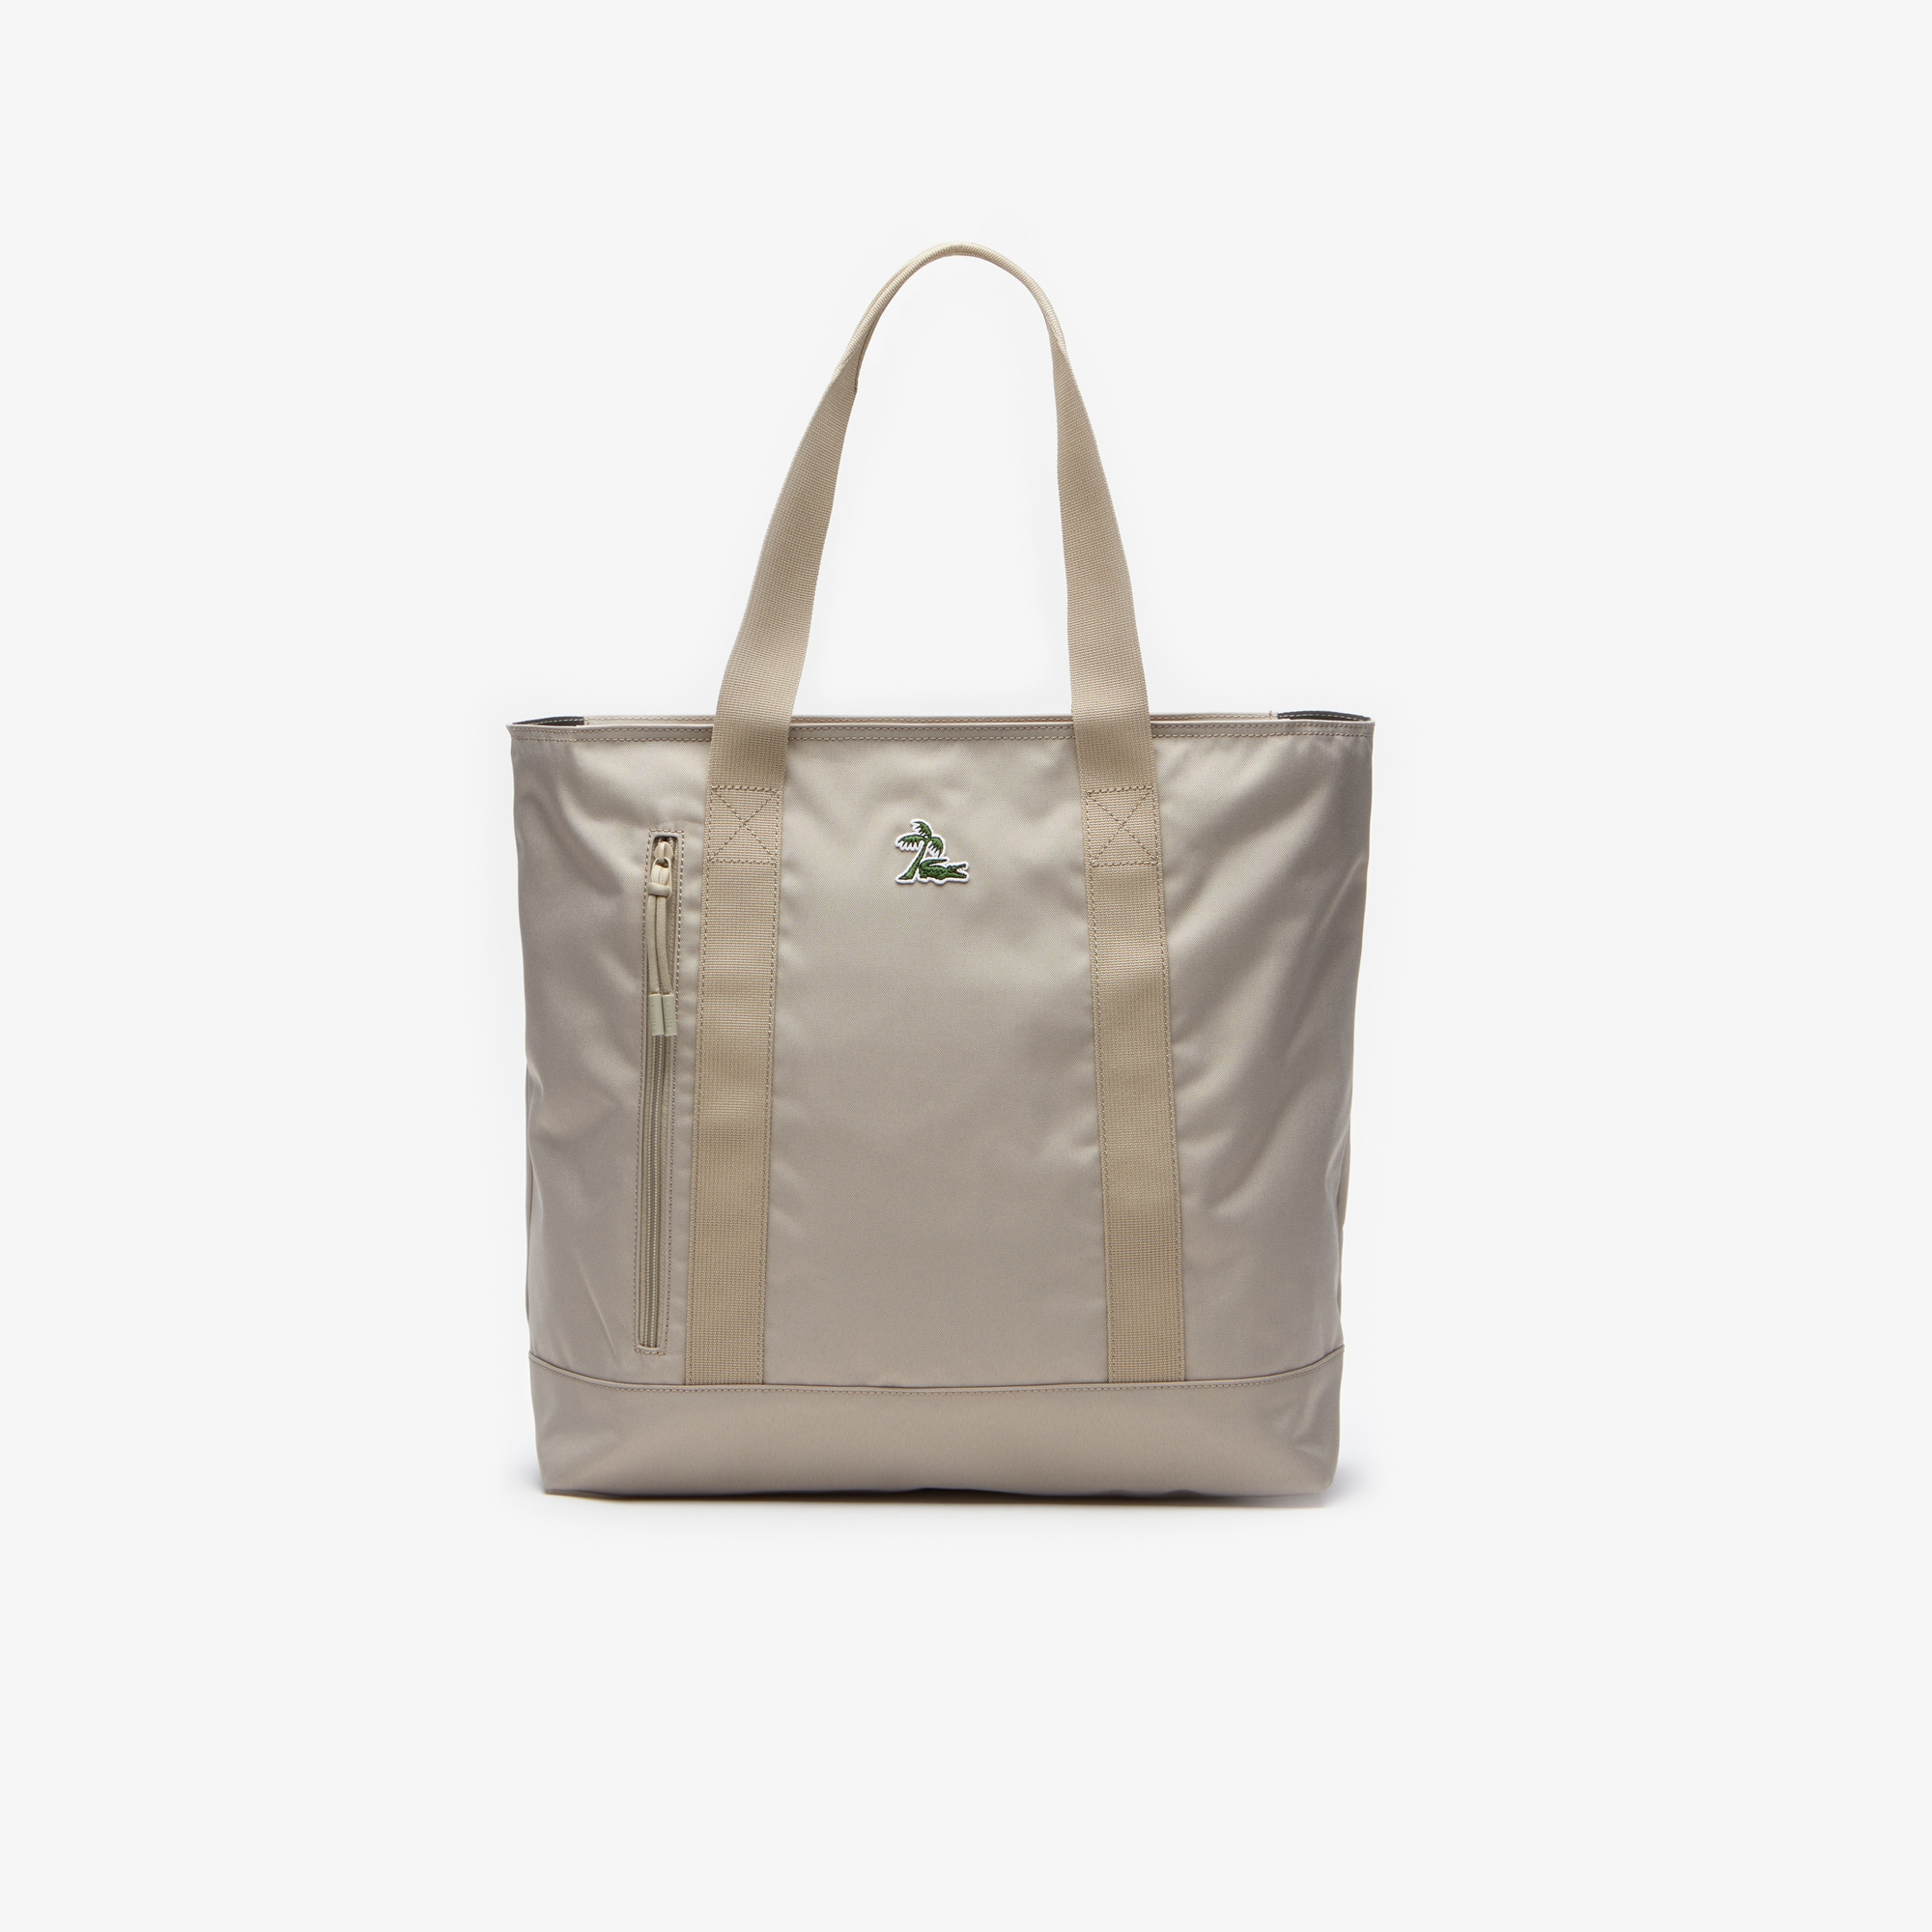 라코스테 네오크록 캔버스 토트백 Lacoste Mens Neocroc Vertical Canvas Tote Bag,FEATHER GRAY